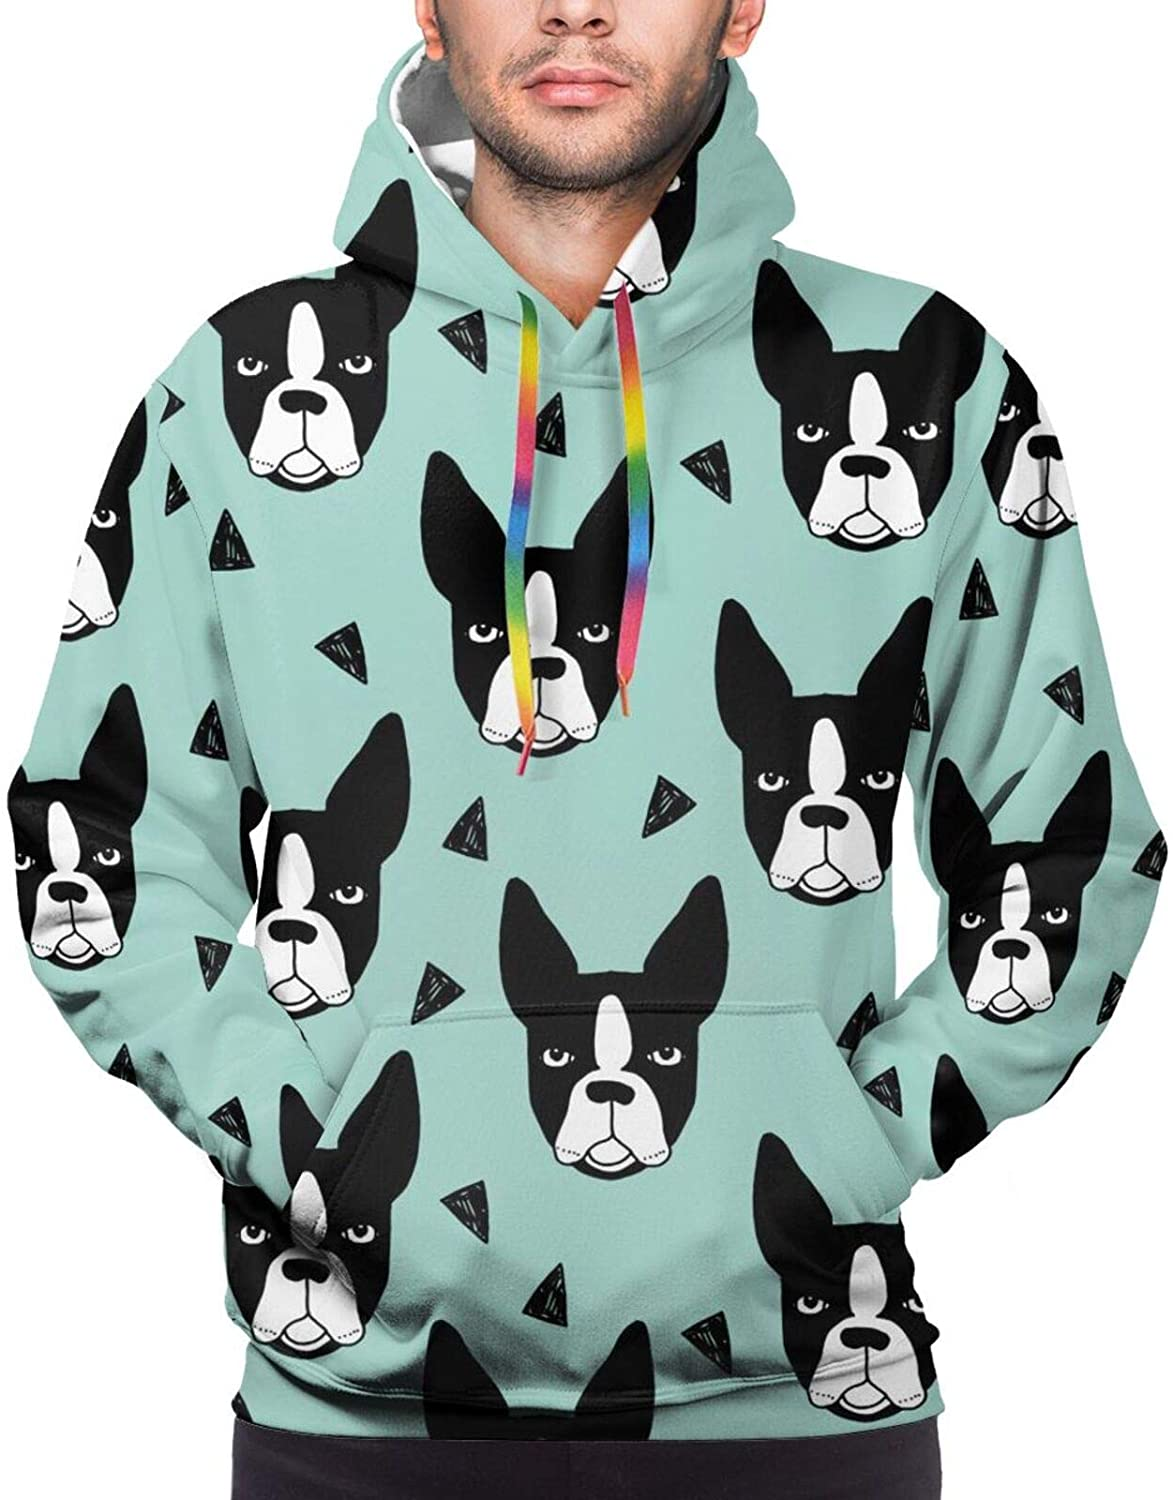 LRHUI Boston Terrier French Bulldog Men's Full Print Graphic Hoodie Pullover with Pocket